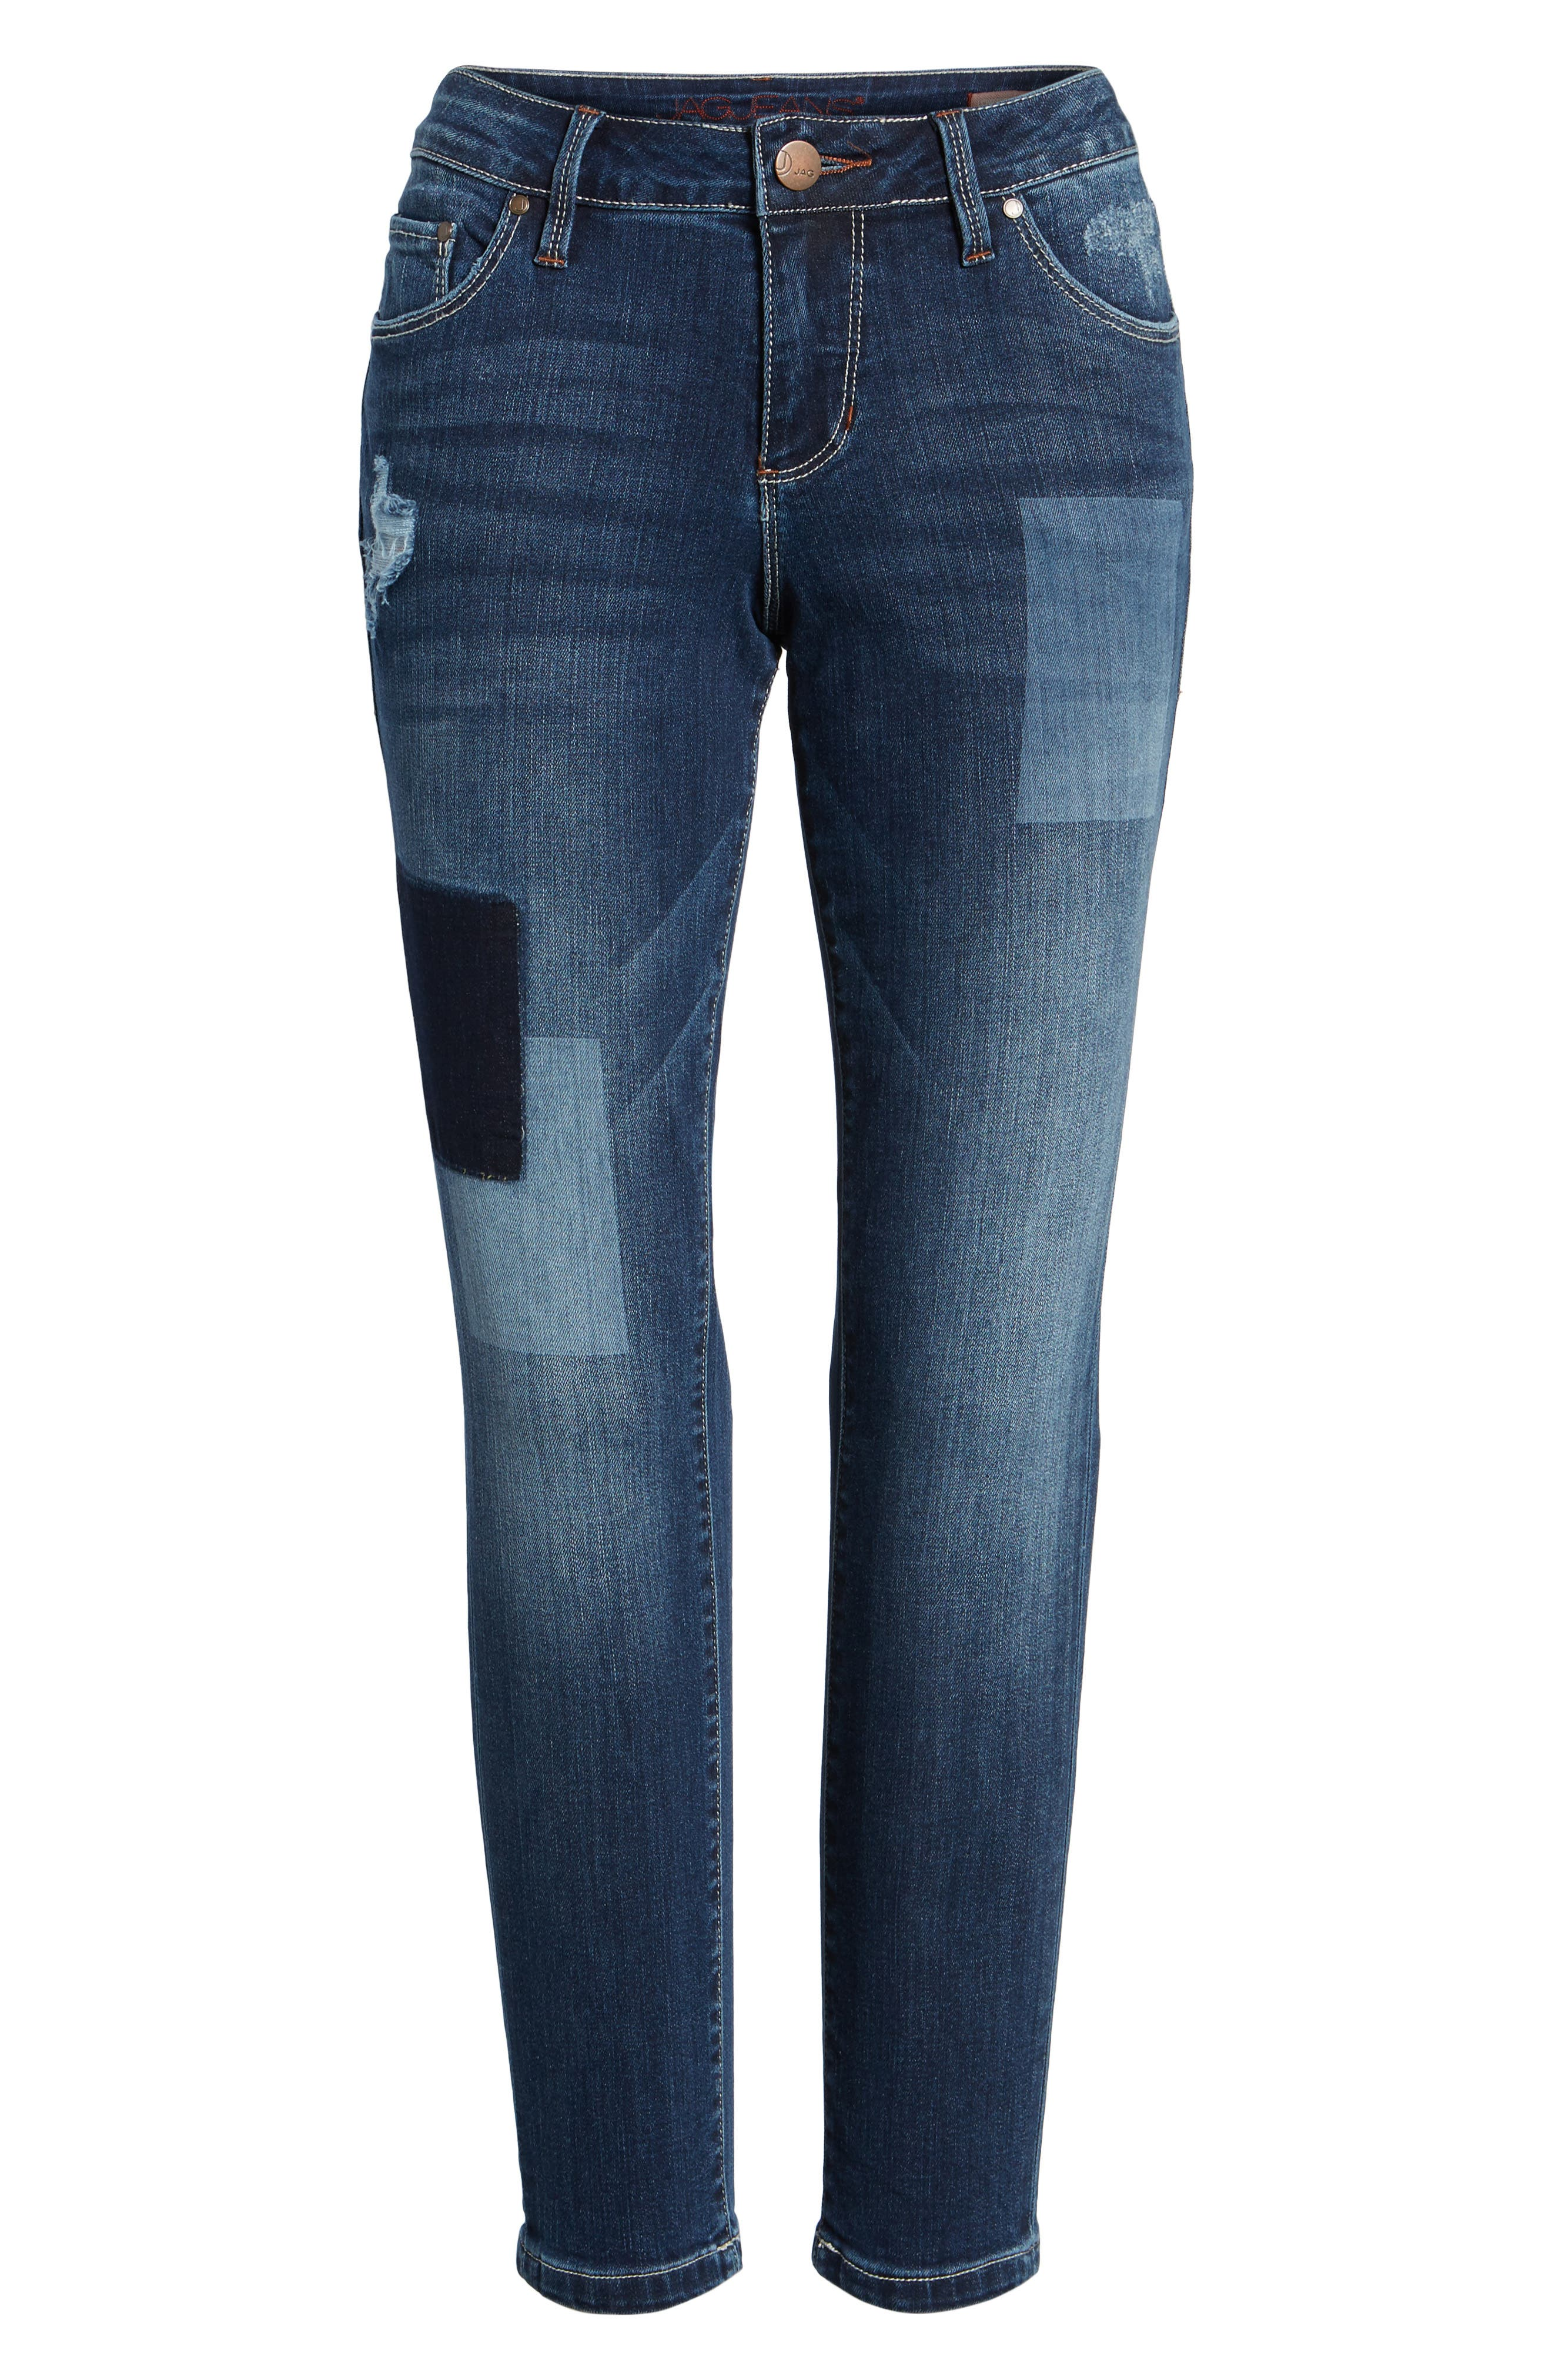 Mera Skinny Ankle Jeans,                             Alternate thumbnail 4, color,                             420